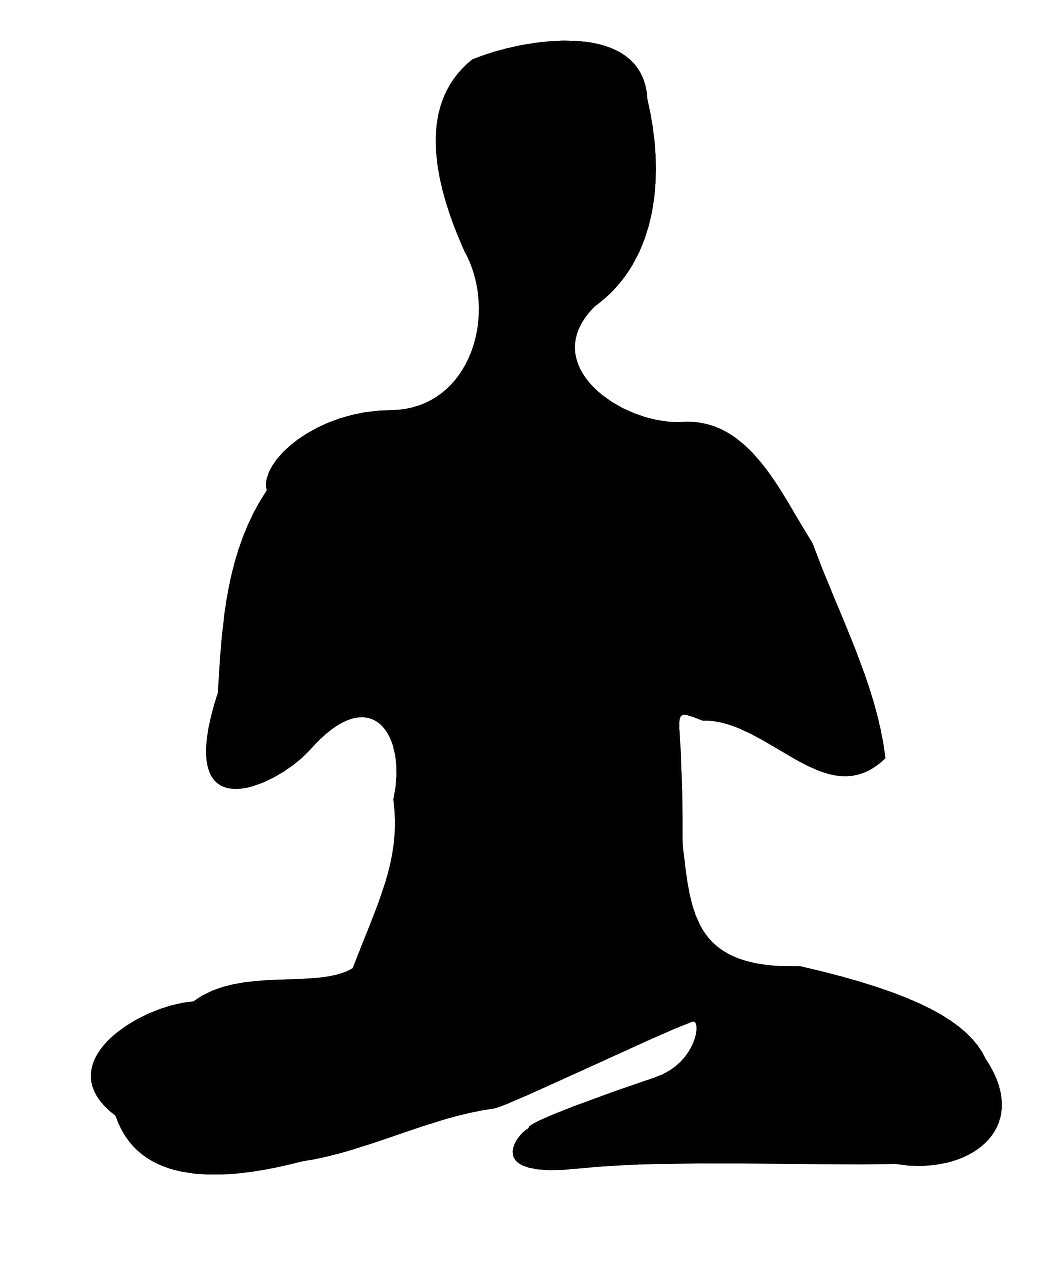 Meditation silhouette at getdrawings. Mind clipart black and white